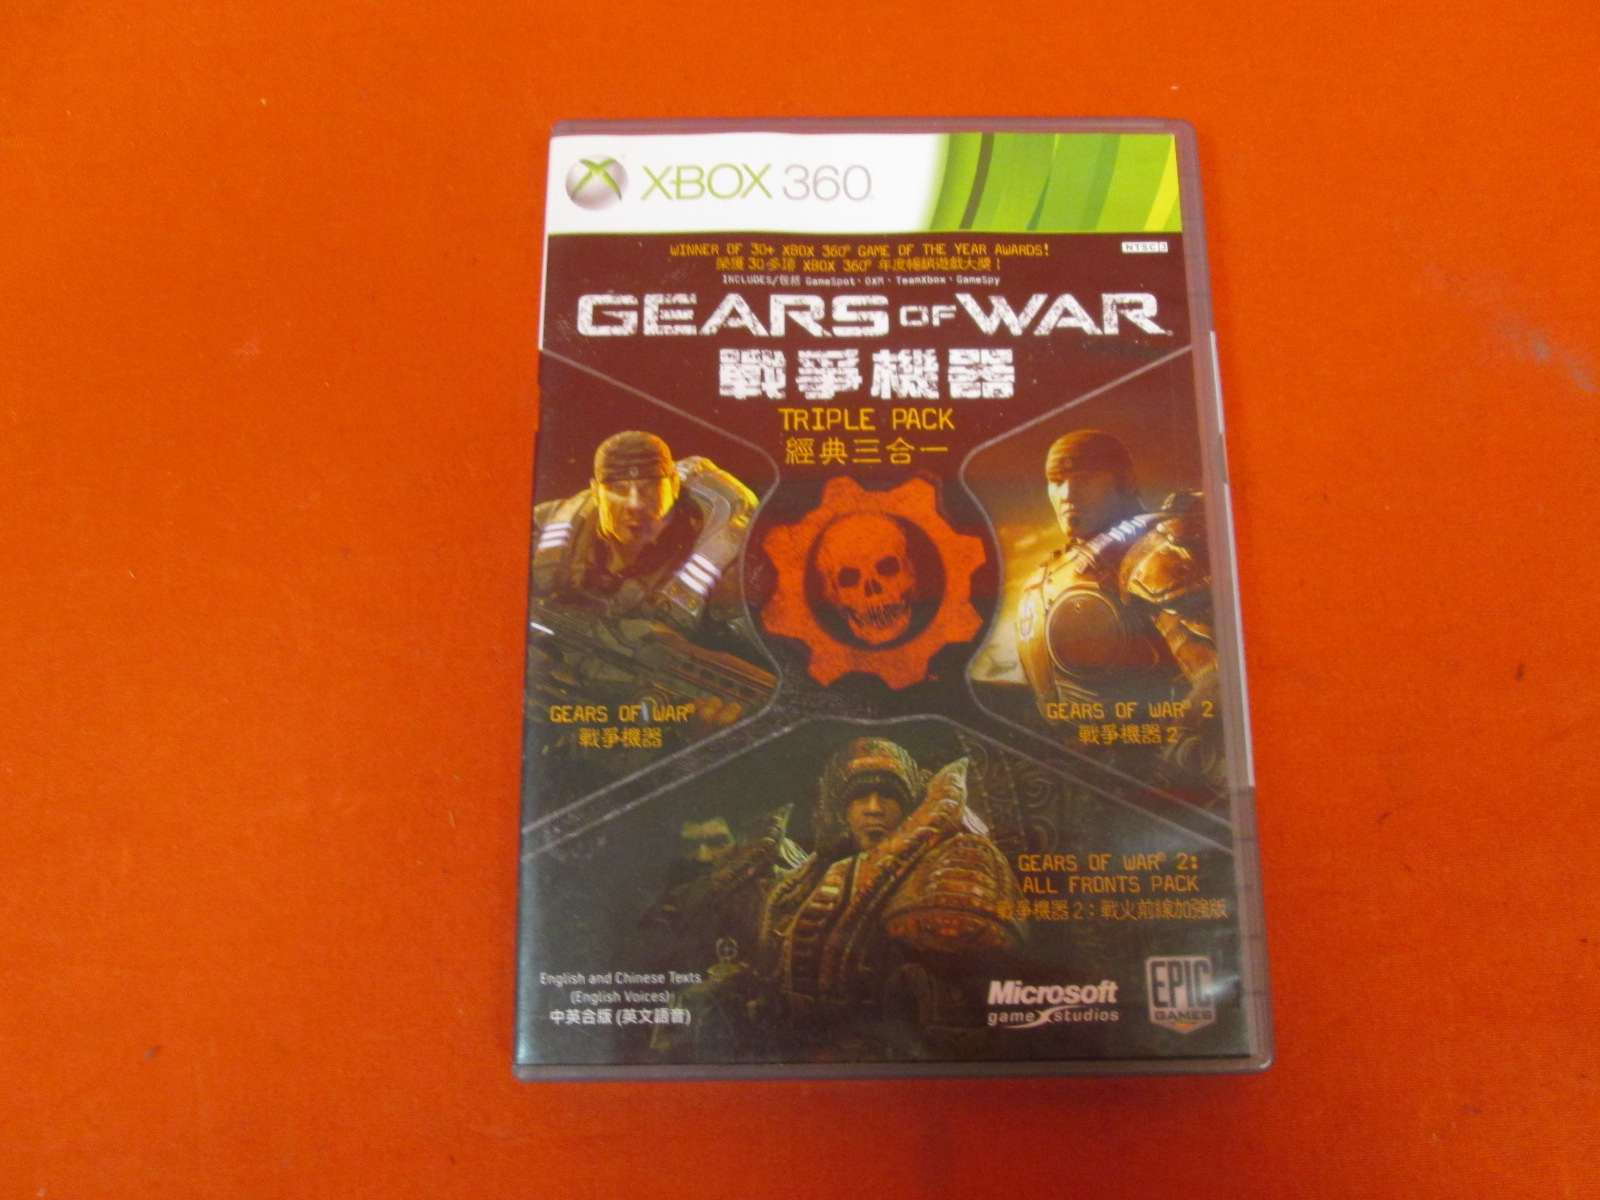 Gears Of War Triple Pack Bundle For Xbox 360 NTSC Chinese Language